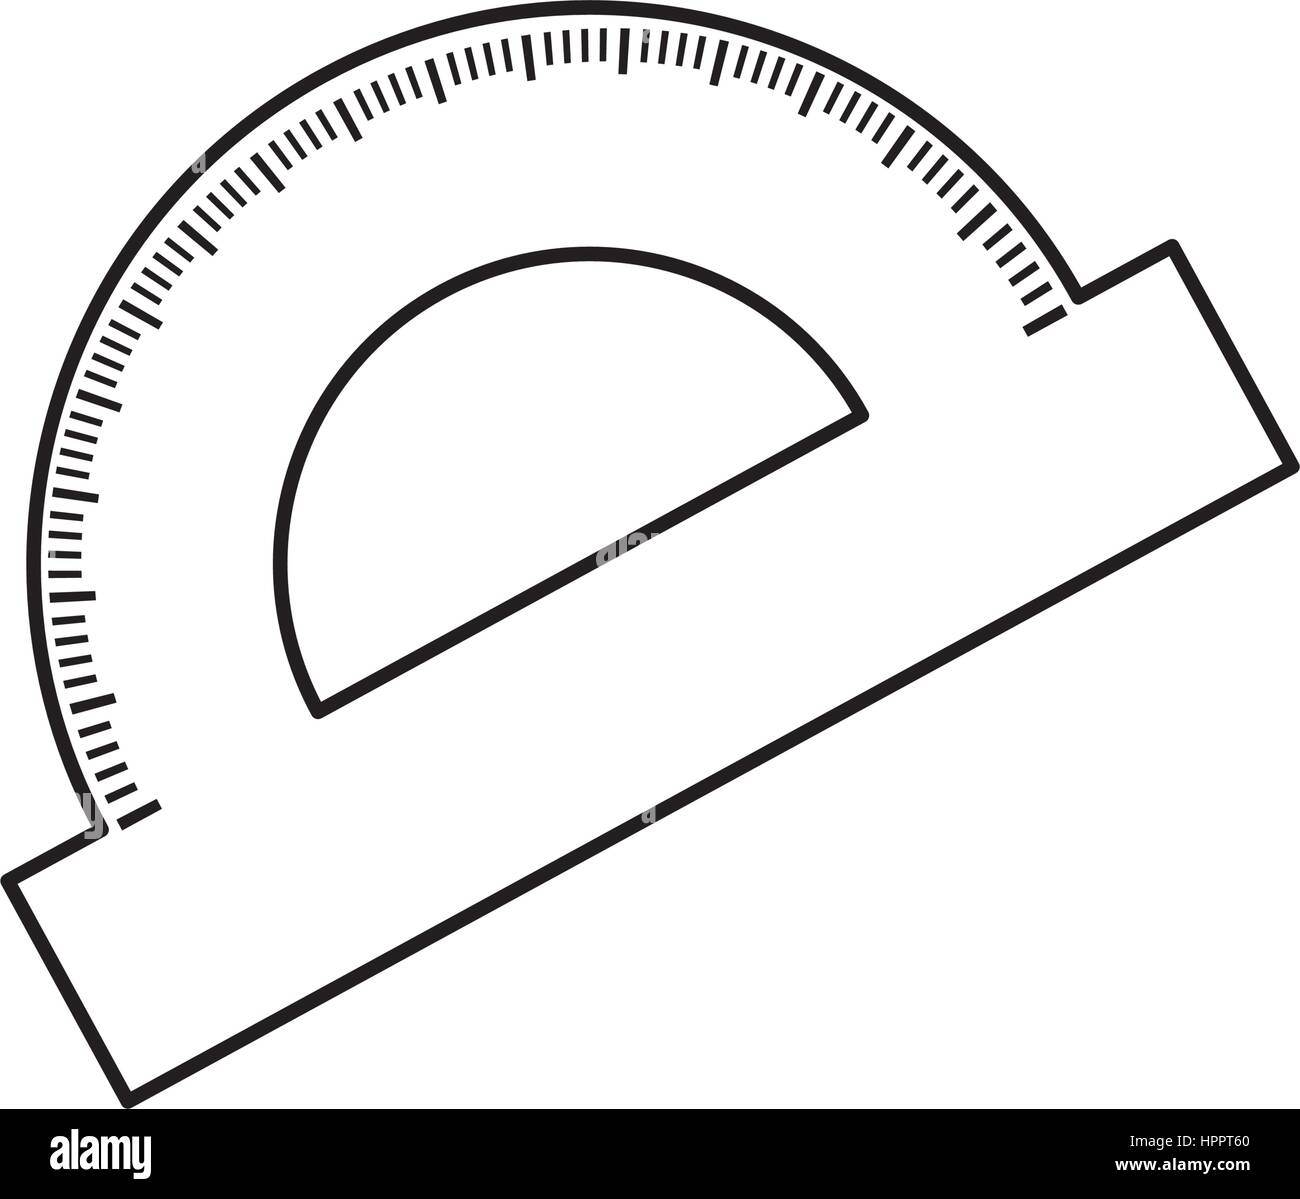 Protractor angle meter - Stock Image